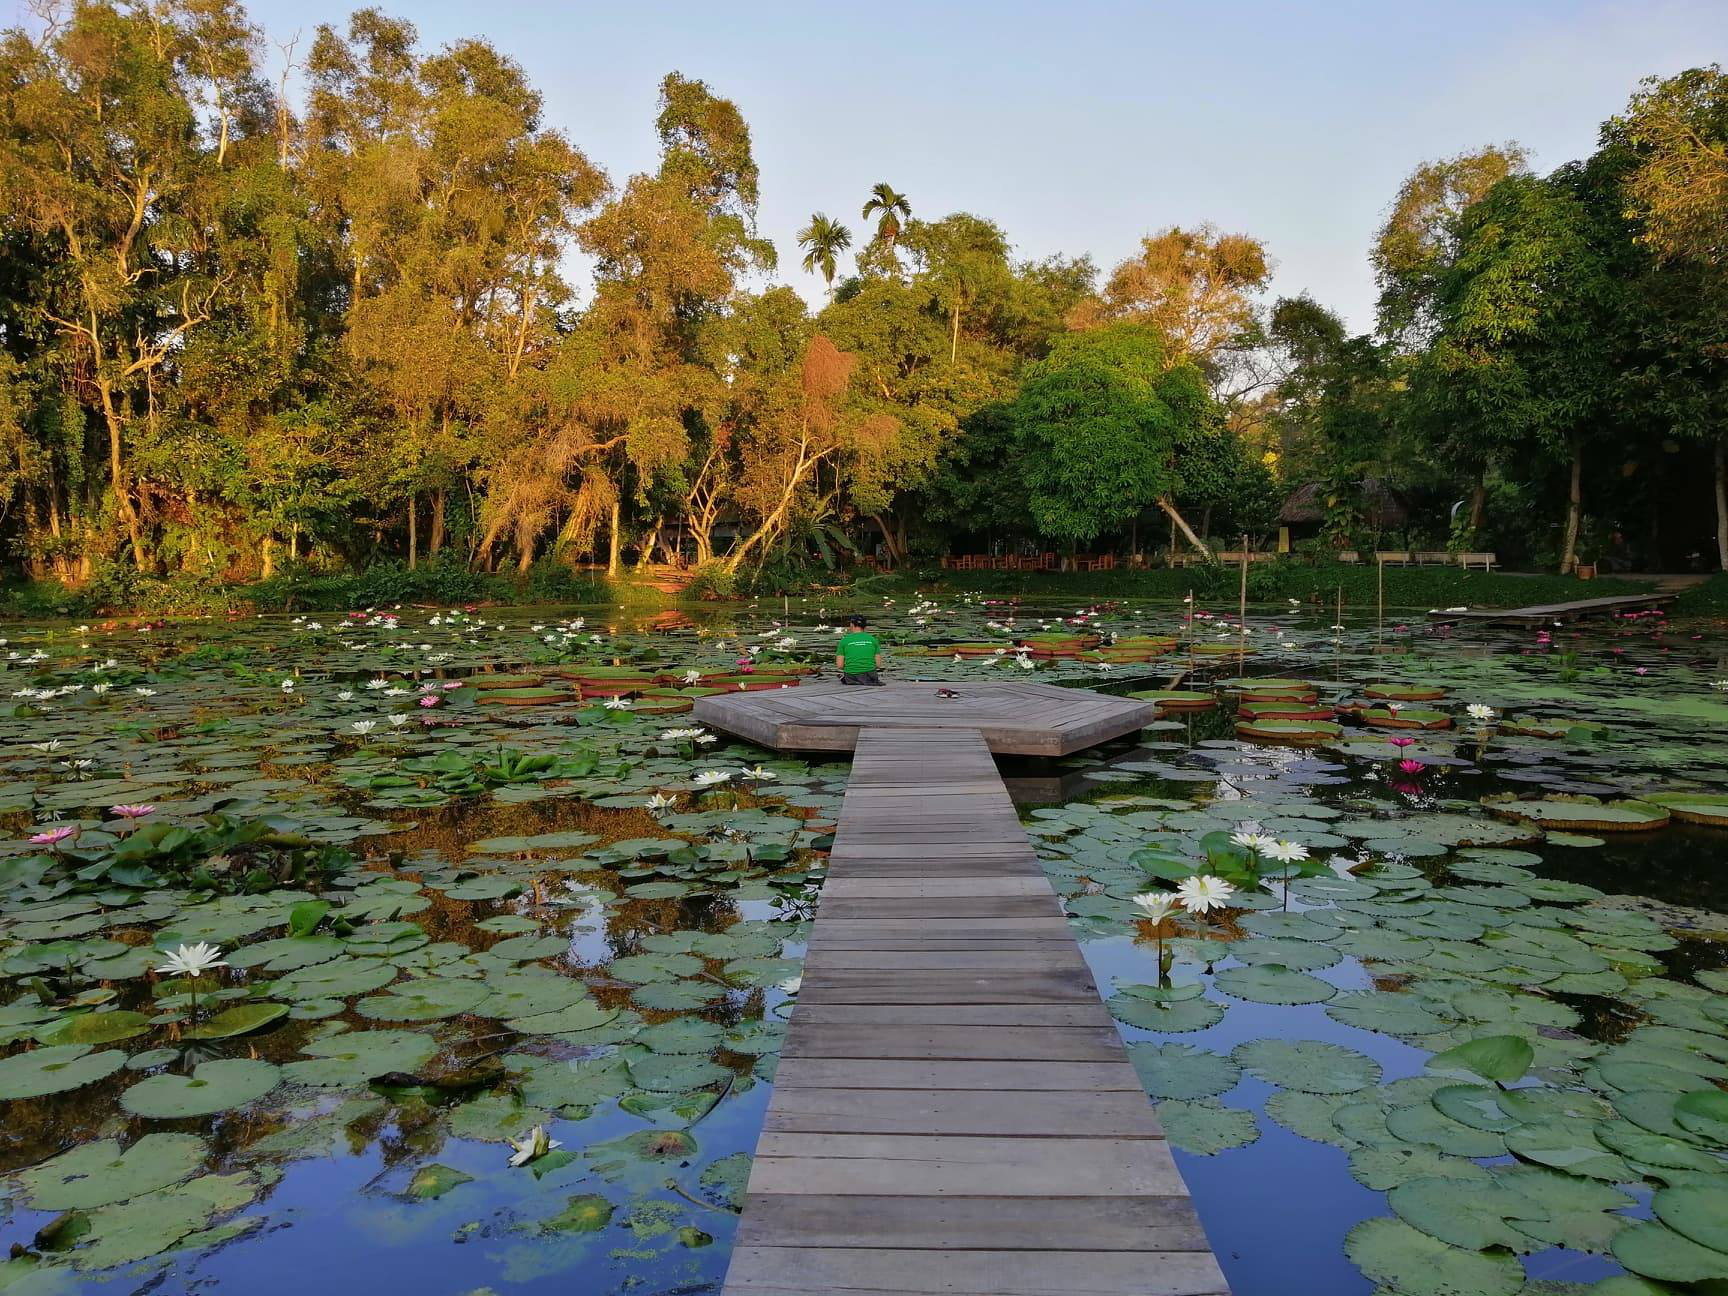 A tourist sits by the water lily pond at the Xeo Quyt Tourism Area in Dong Thap Province, Vietnam. Photo: Ly Quoc Dang / Tuoi Tre